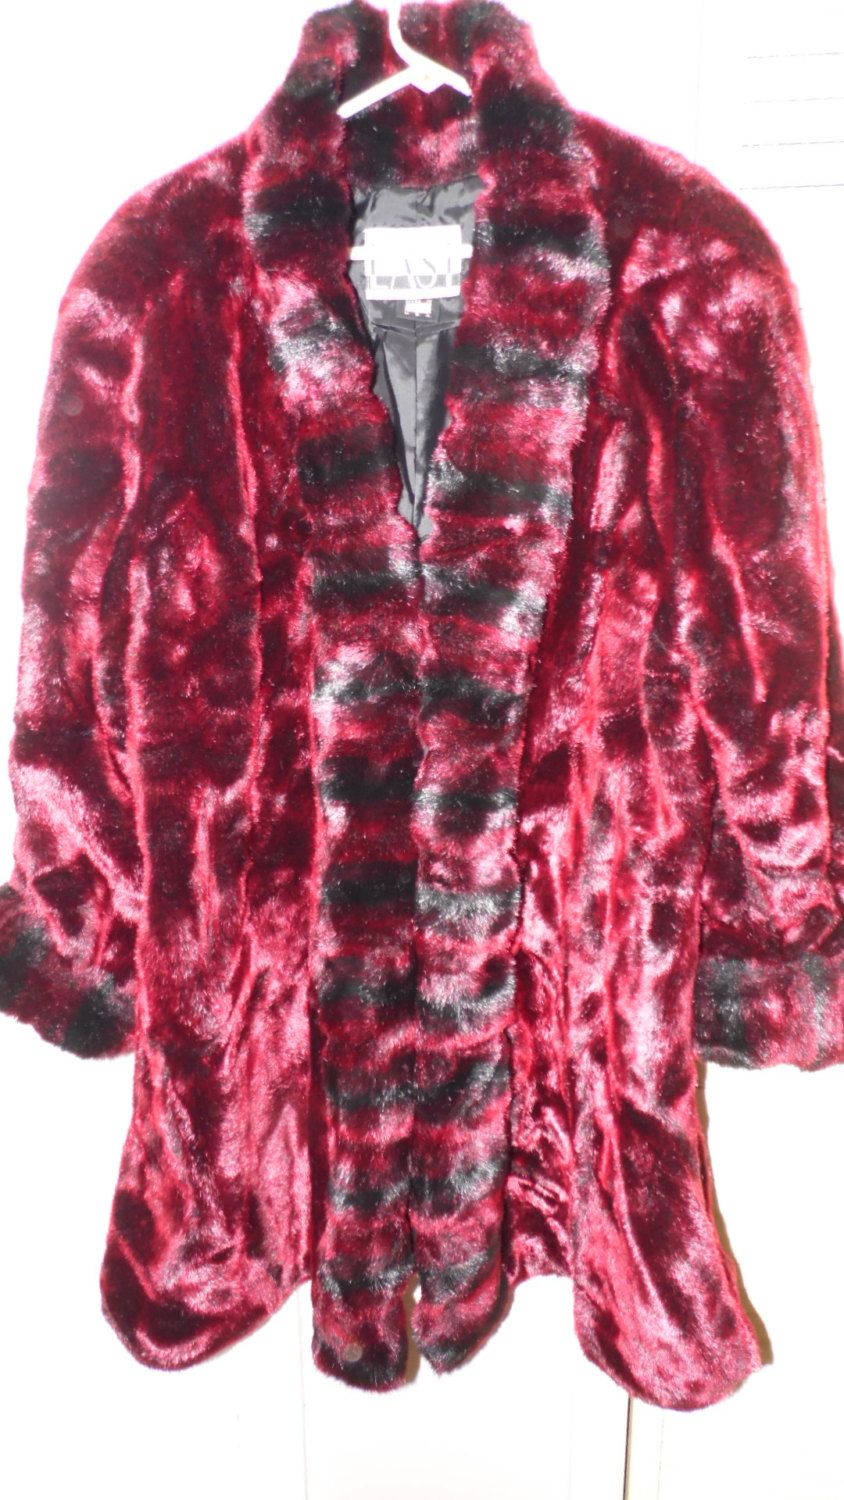 da8dd22293 Boulevard East faux fur Coat Black And Red Mix Size L by FabulousFinds1 on  Etsy